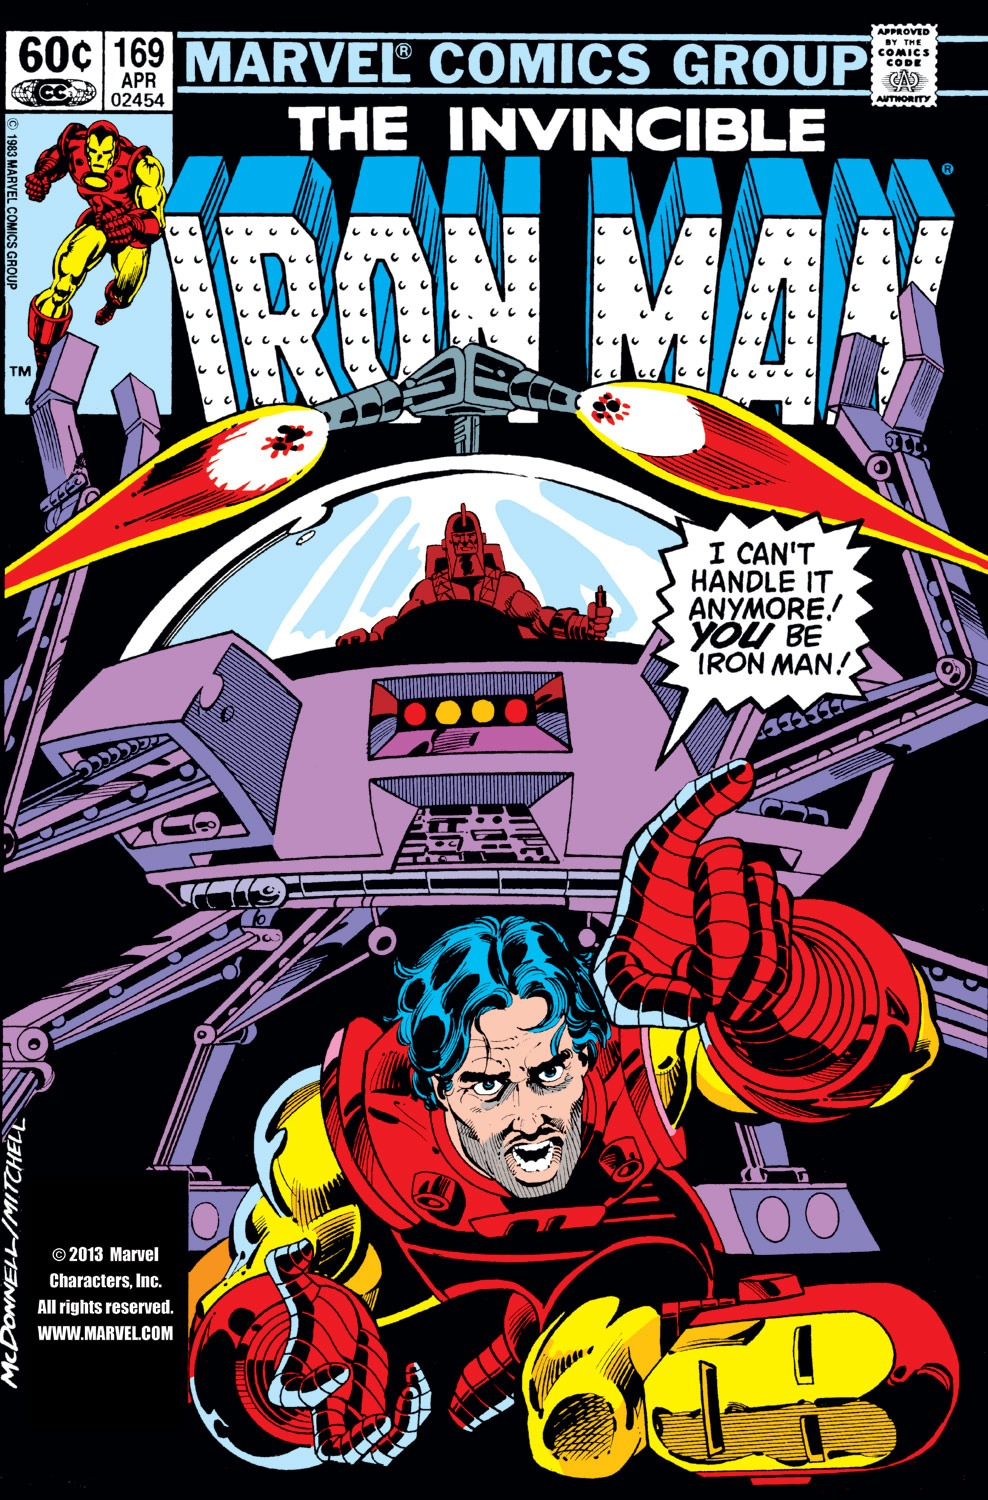 Iron Man (1968) #169, cover penciled by Luke McDonnell & inked by Steve Mitchell.